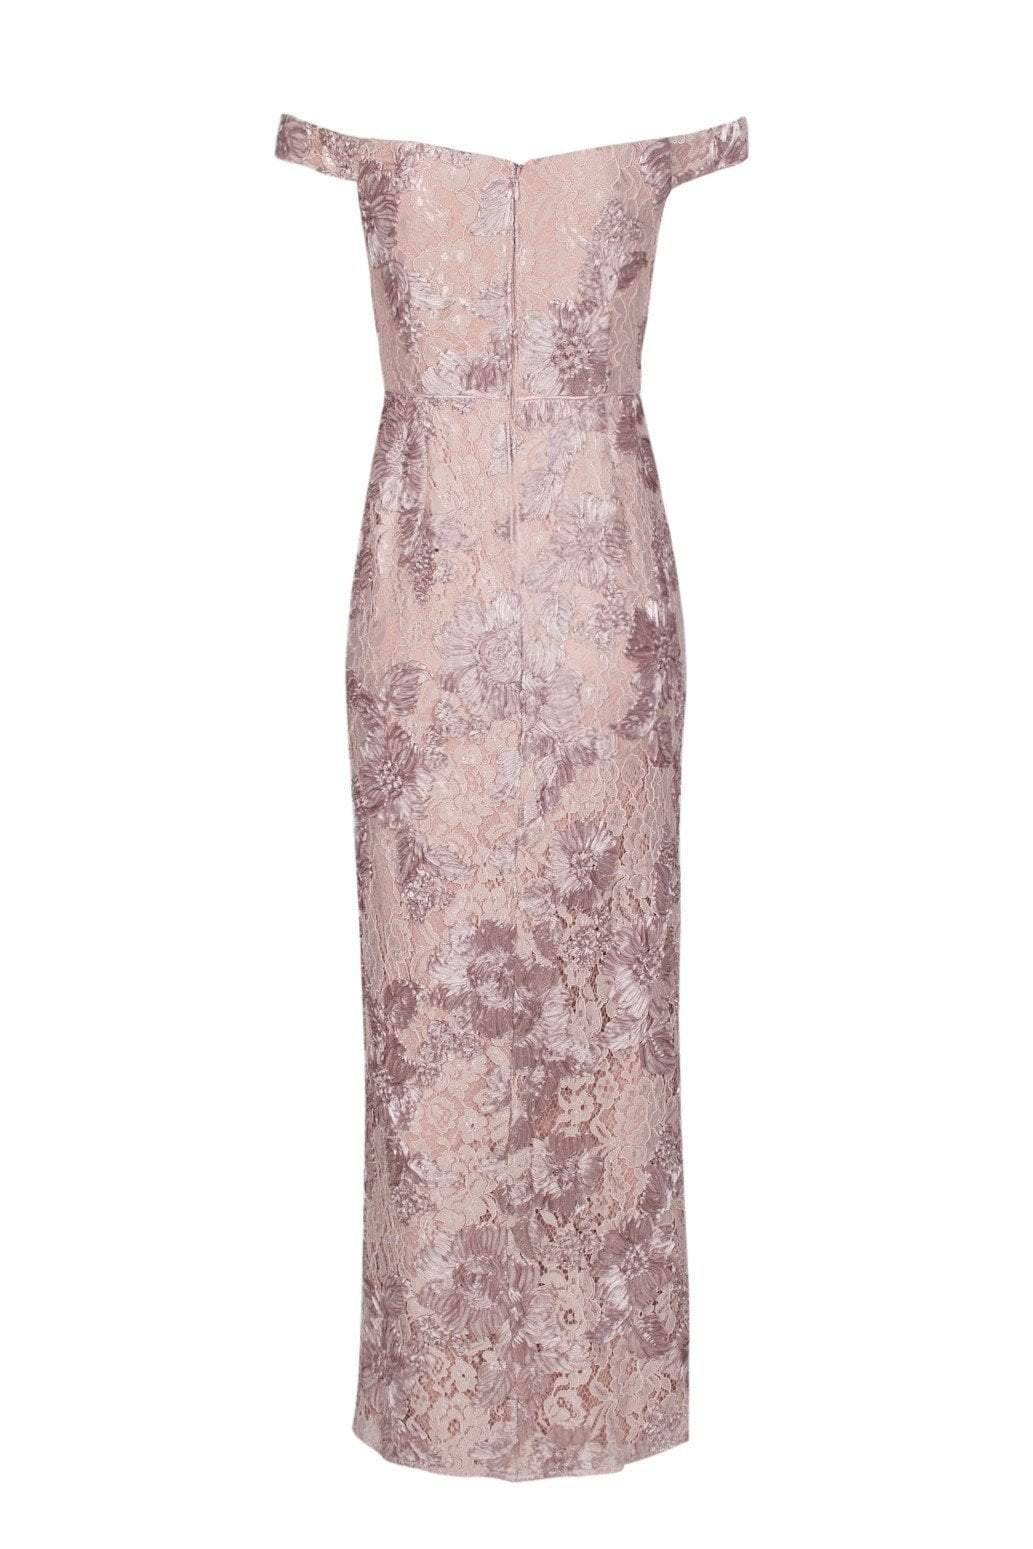 Aidan Mattox - MD1E203451 Embroidered Lace Off-Shoulder Column Dress In Pink